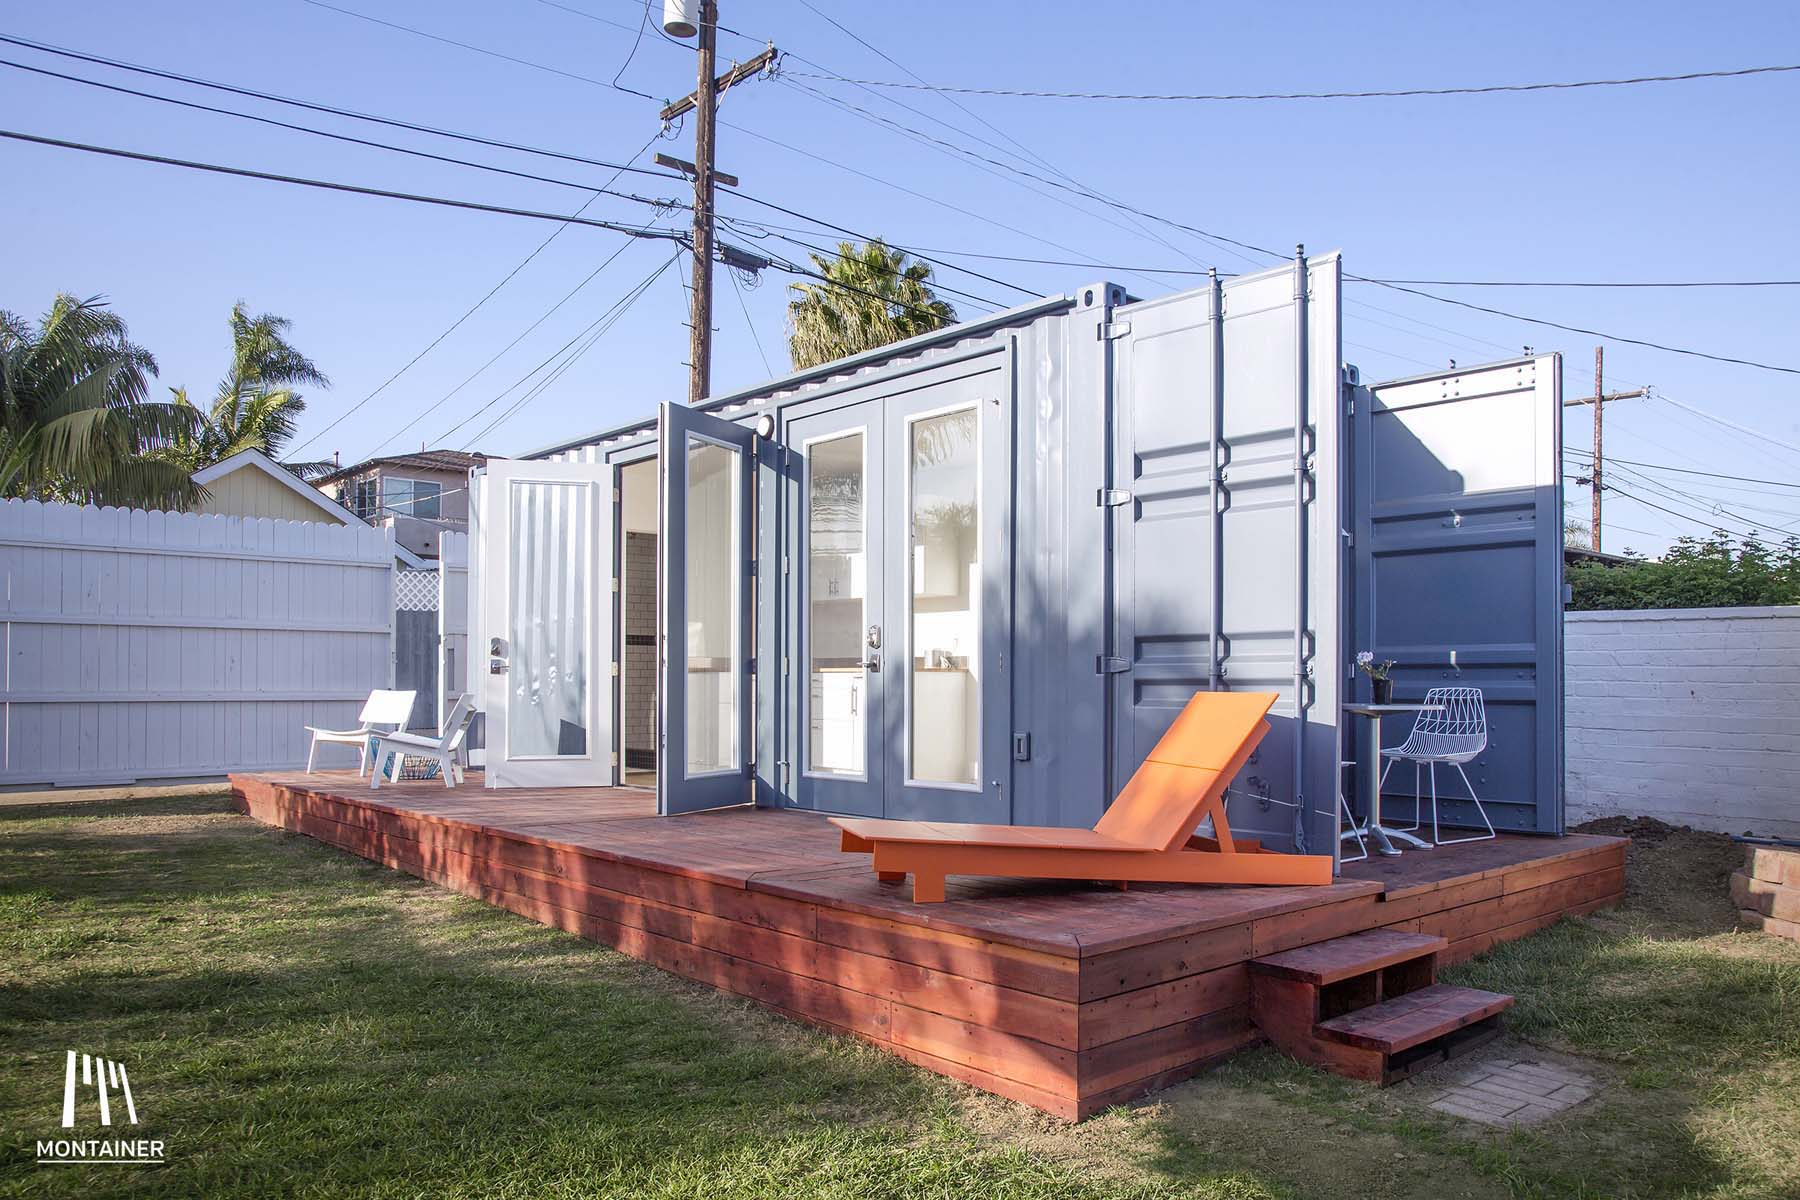 Modular Container Homes 5 shipping container homes you can order right now - curbed